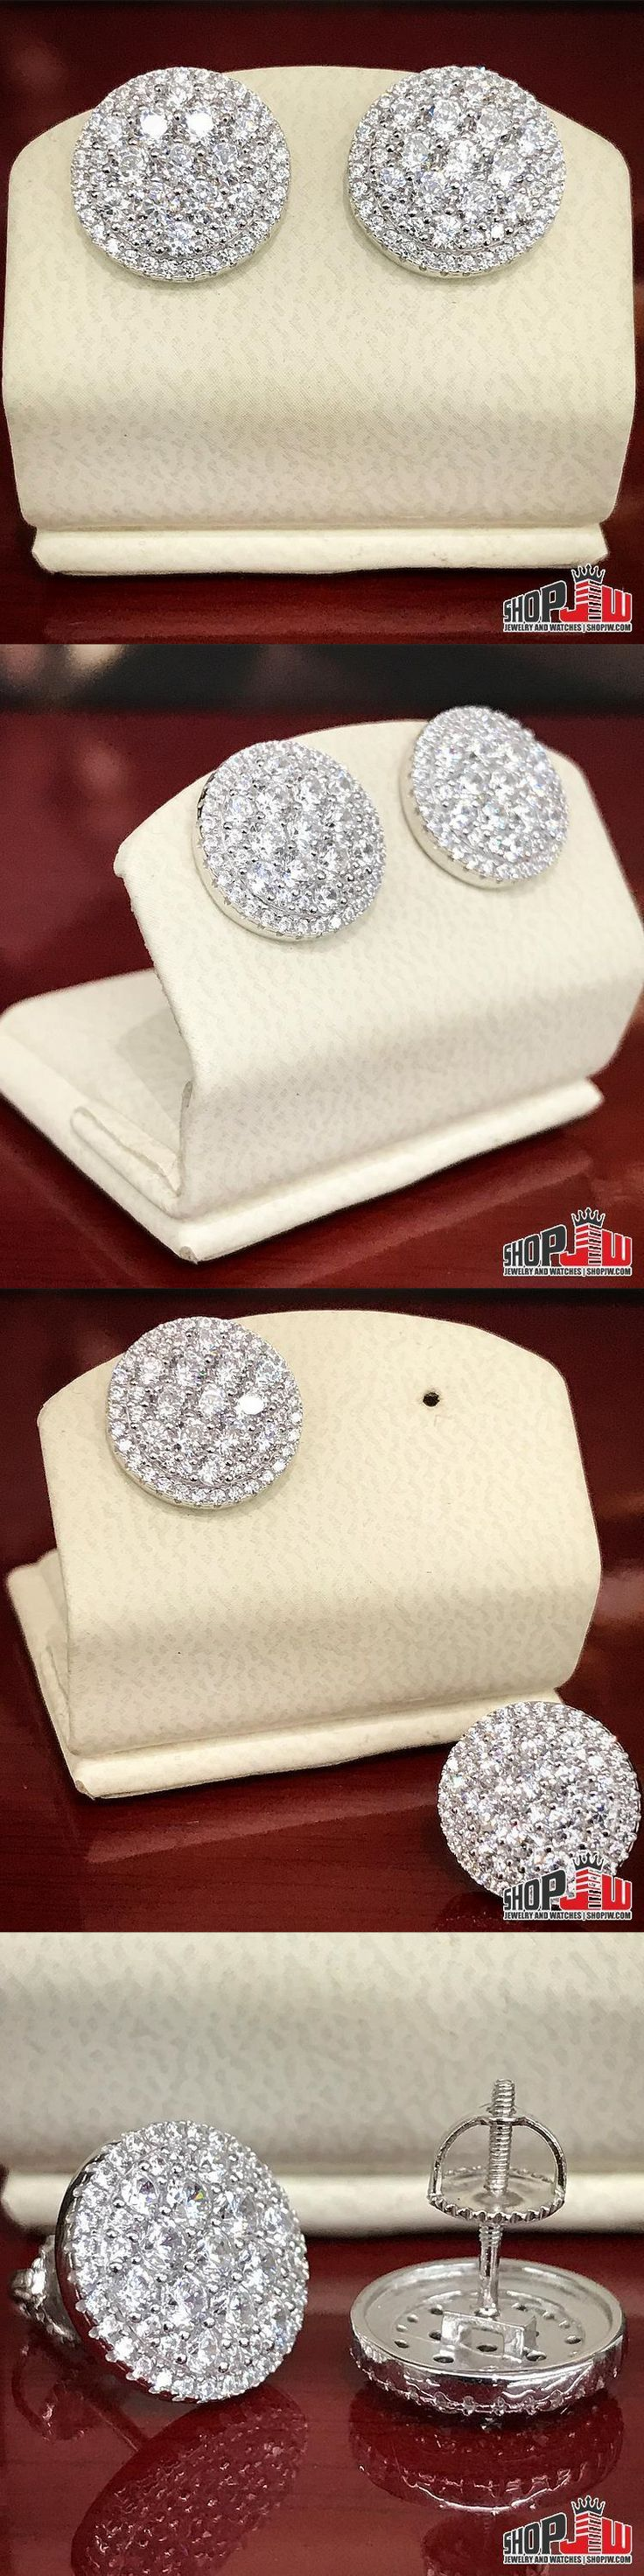 Earrings Studs 14085: Mens 14K White Gold Finish .925 Silver Screw Back Earrings Iced Out Round Pave -> BUY IT NOW ONLY: $55 on eBay!